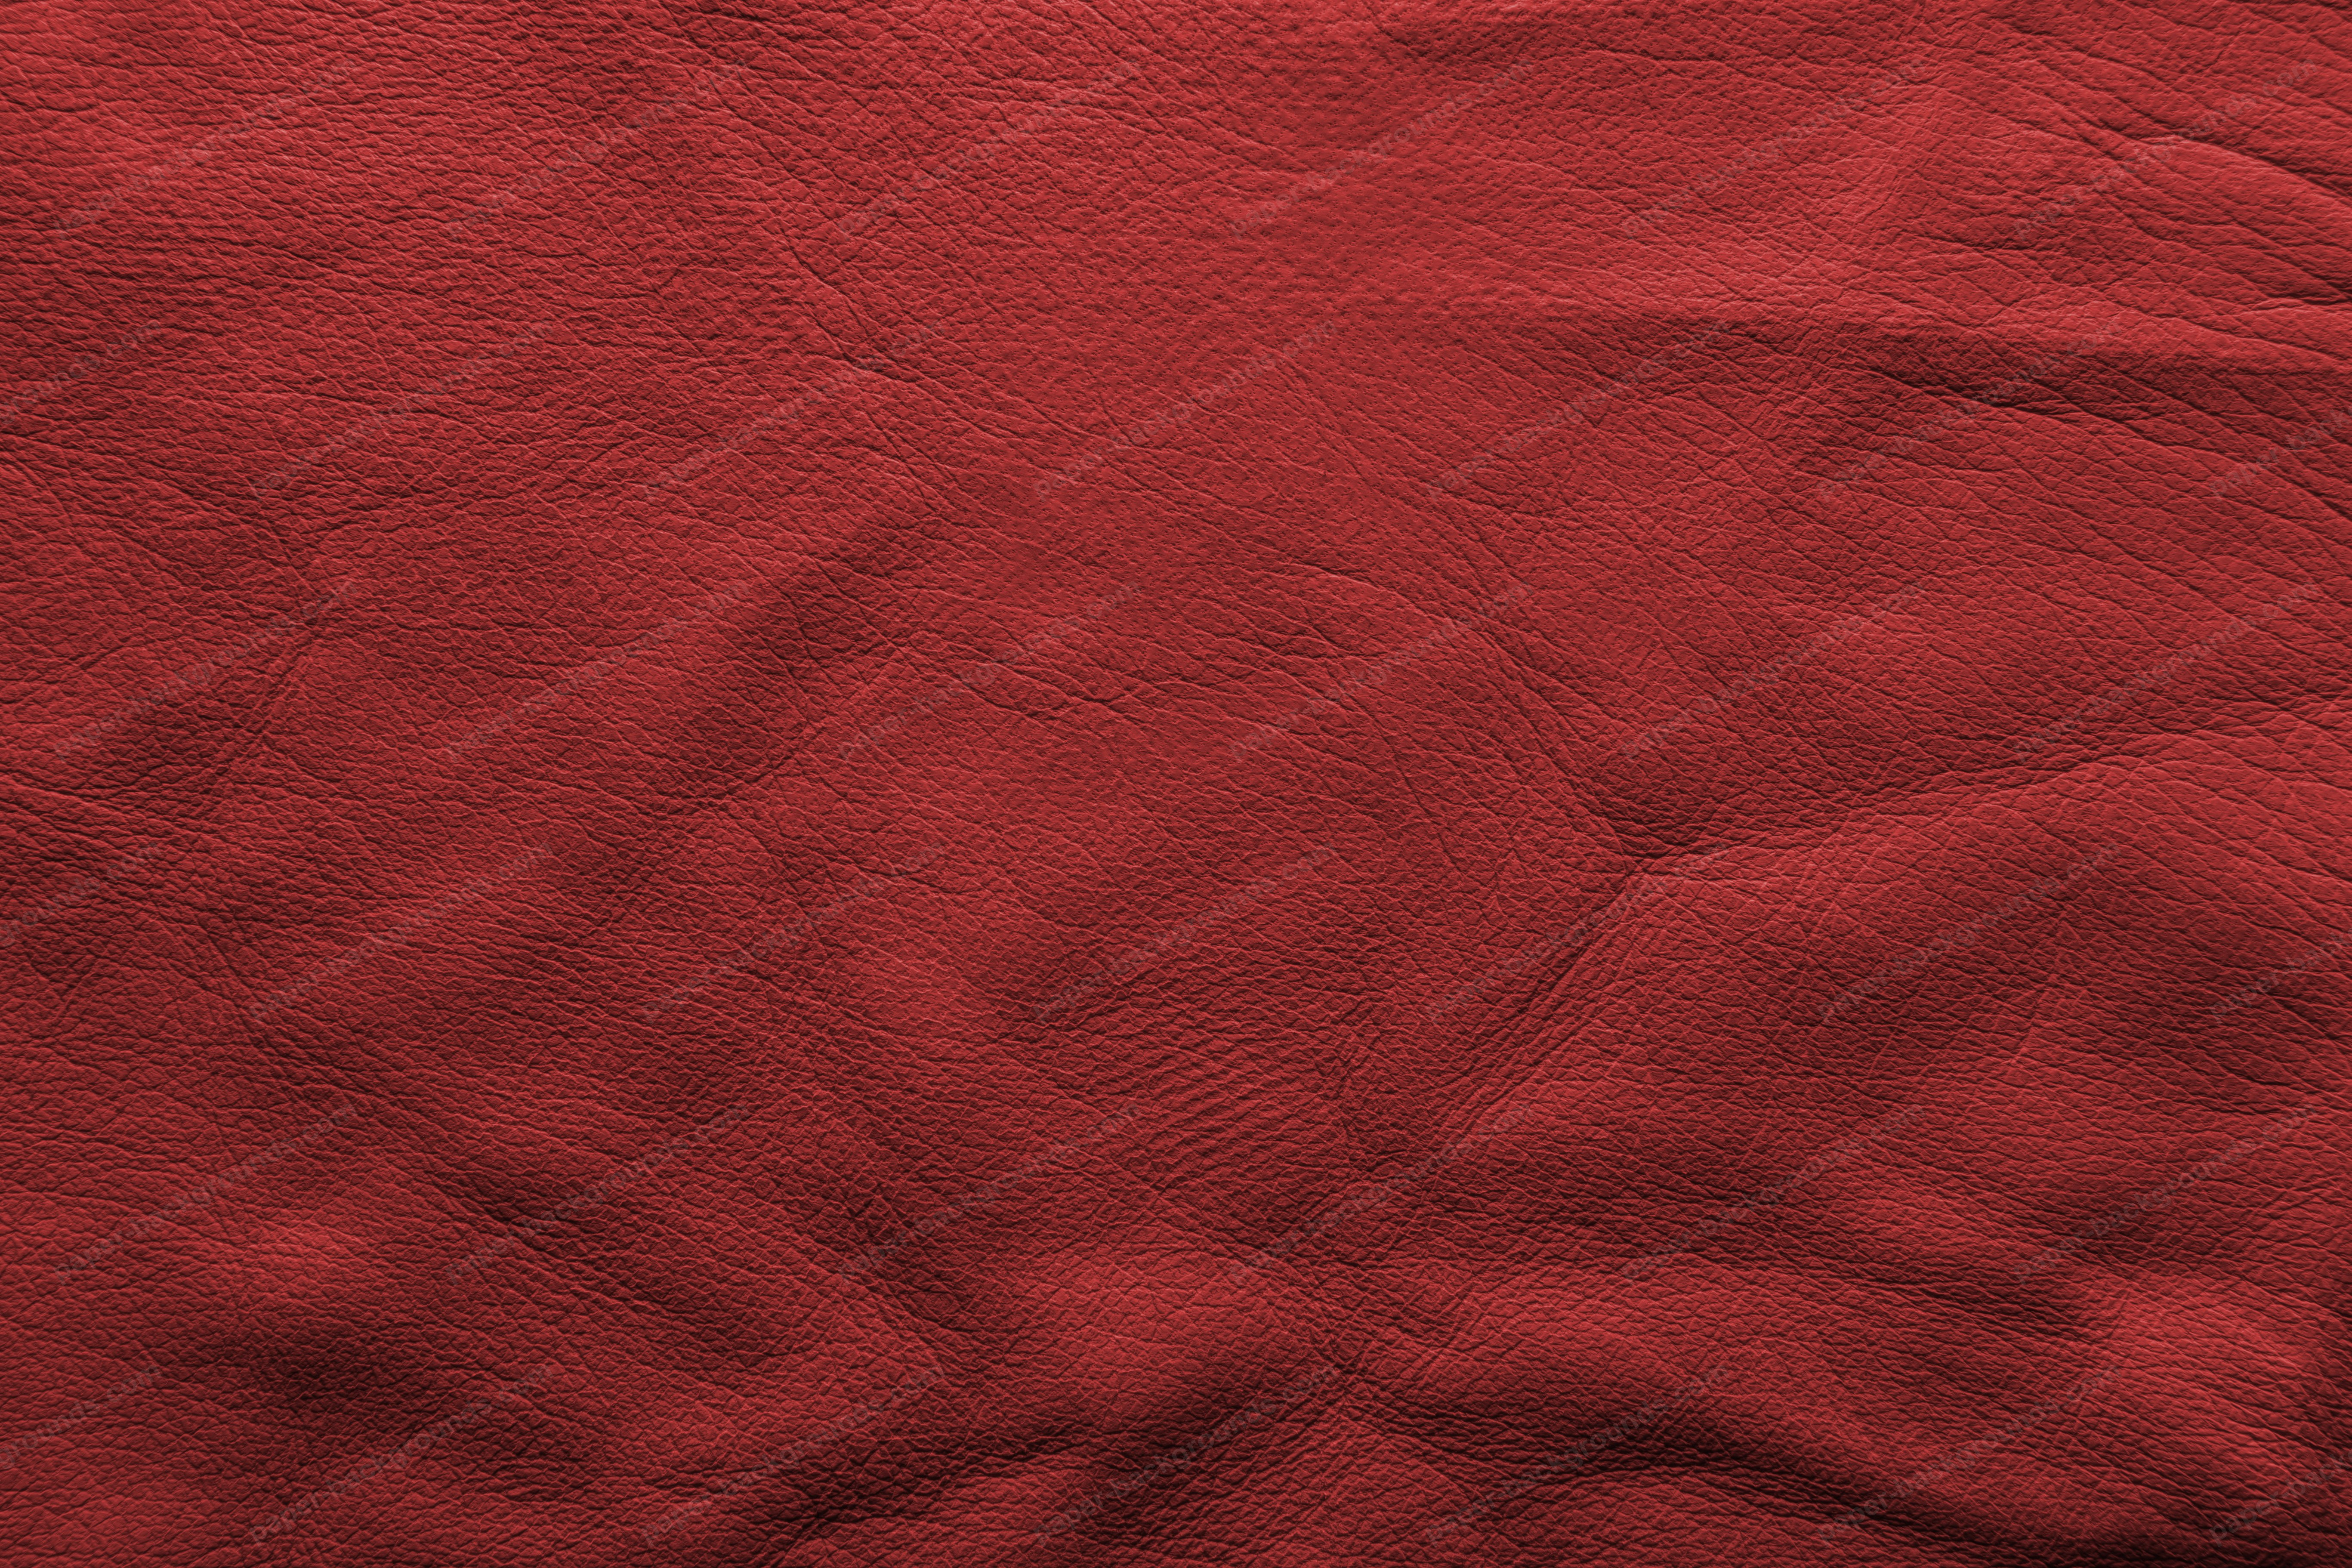 Dark Red Leather Background Texture  PhotoHDX